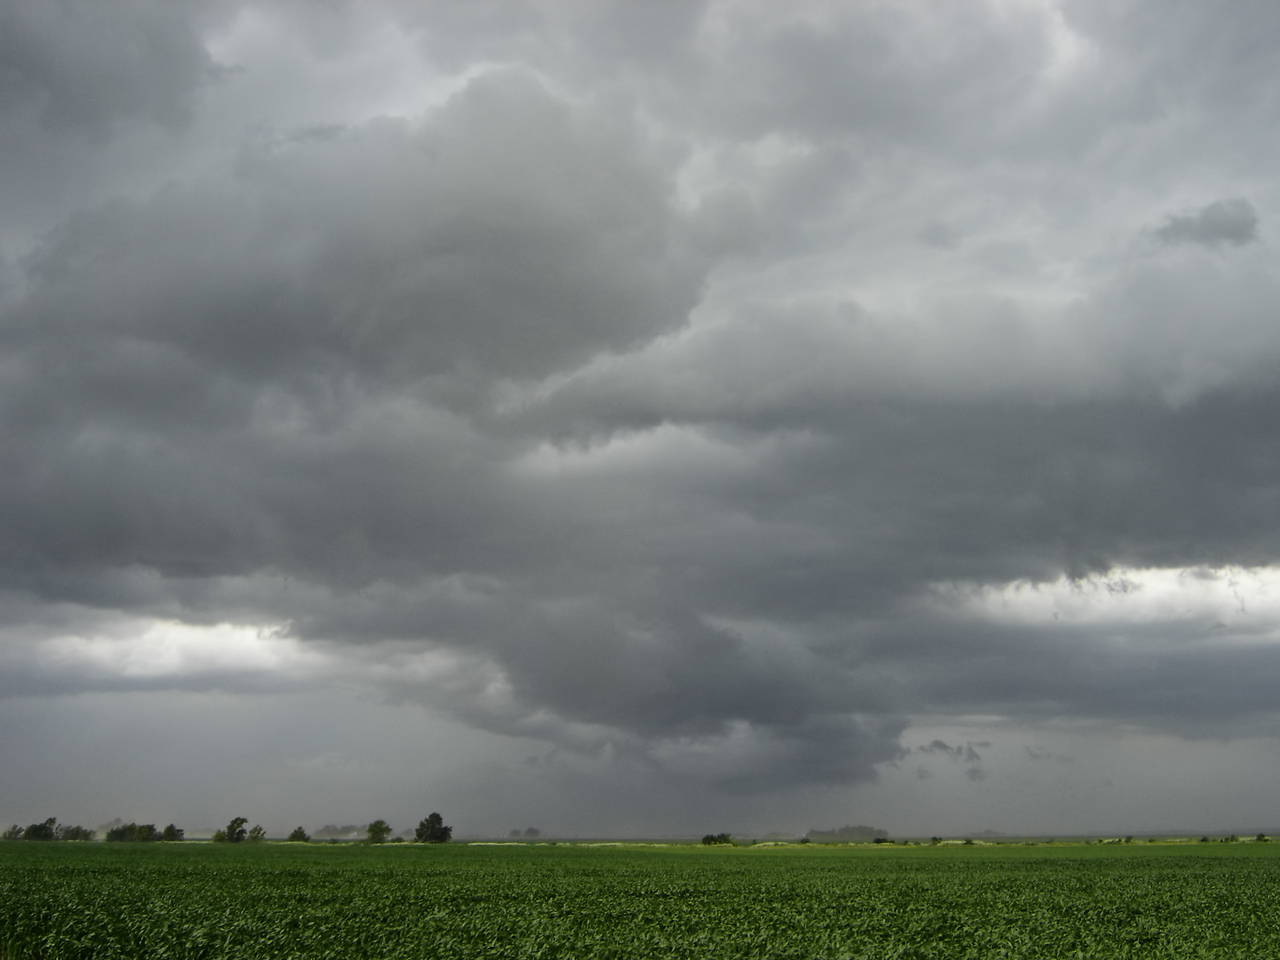 "June 8 - W Macon County IL. This was a line of severe thunderstorms with strong straight line winds and my first up close experience with leading edge gustnadoes.<br /> <br /> Related link <a href=""http://www.crh.noaa.gov/ilx/events/jun082005/jun08.php"">http://www.crh.noaa.gov/ilx/events/jun082005/jun08.php</a>"